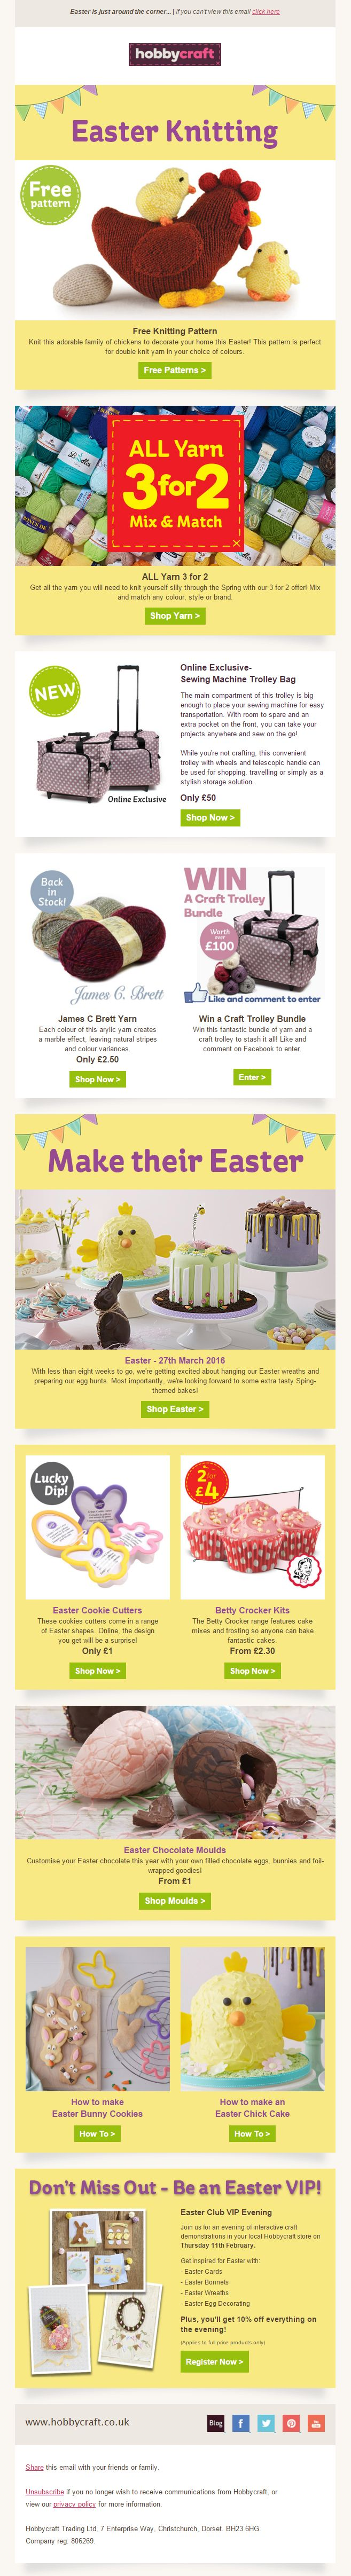 94 best easter emails images on pinterest email marketing hobbycraft easter newsletter including free knitting pattern 3 for 2 offers recommendations competition negle Choice Image